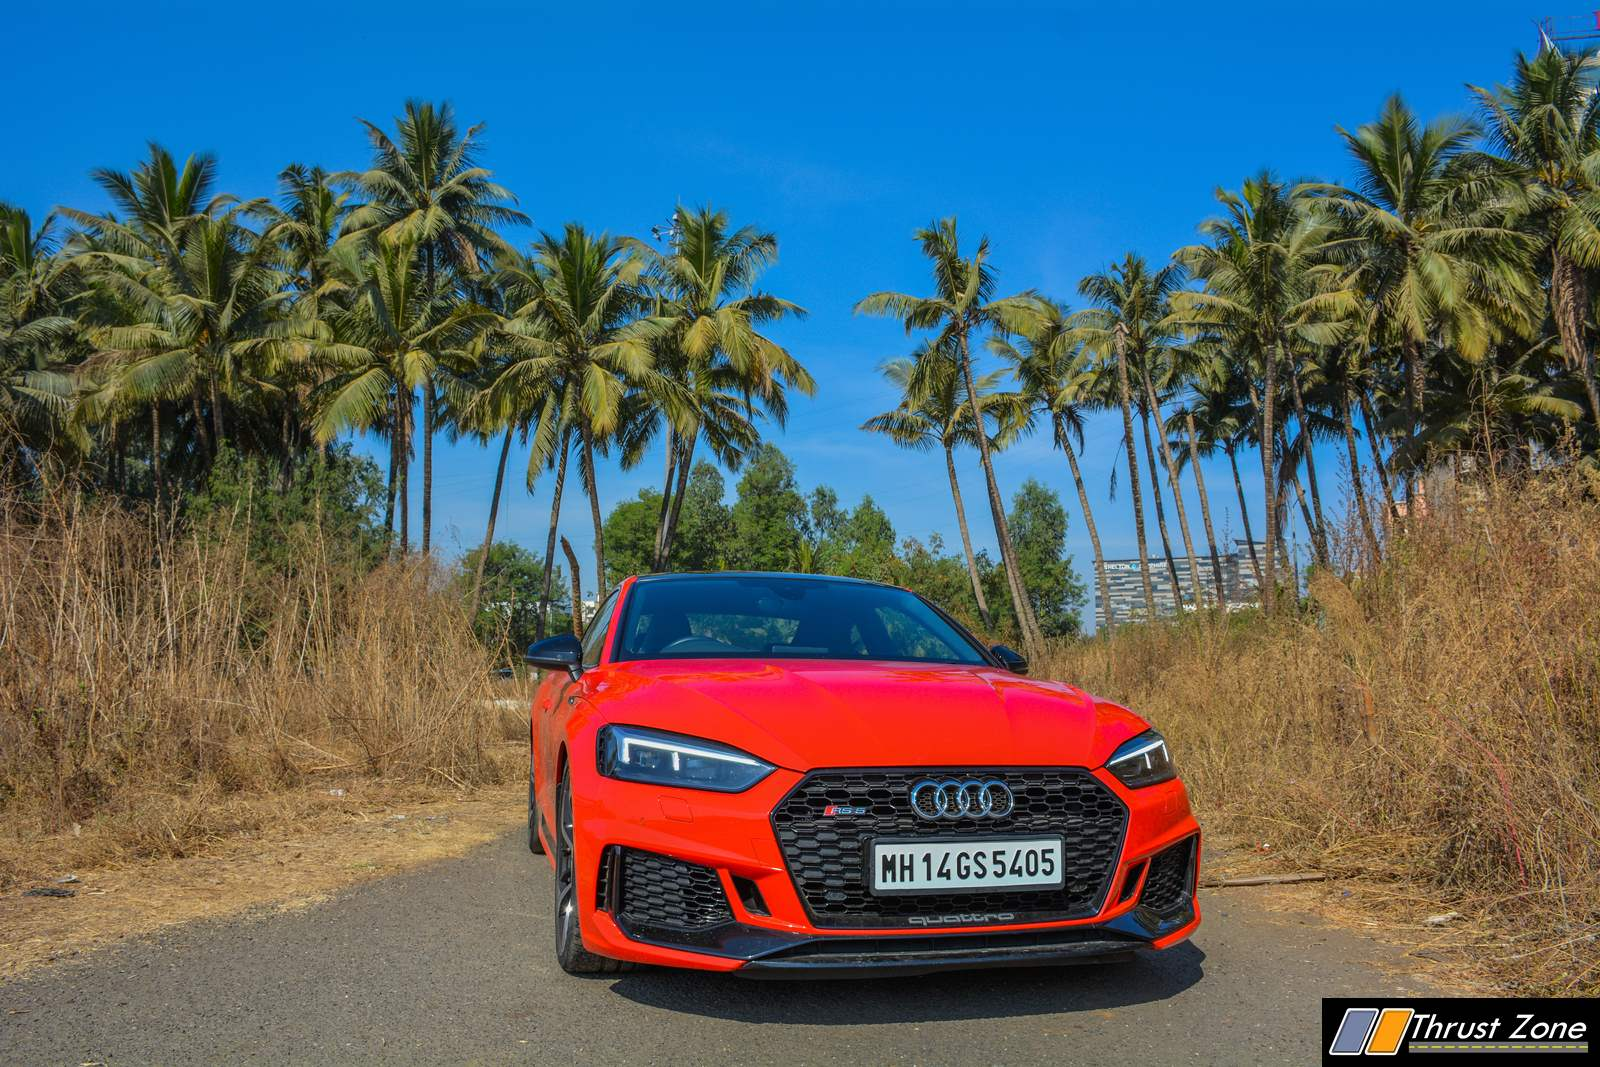 https://www.thrustzone.com/wp-content/uploads/2018/12/2018-Audi-RS5-INDIA-REVIEW-3.jpg